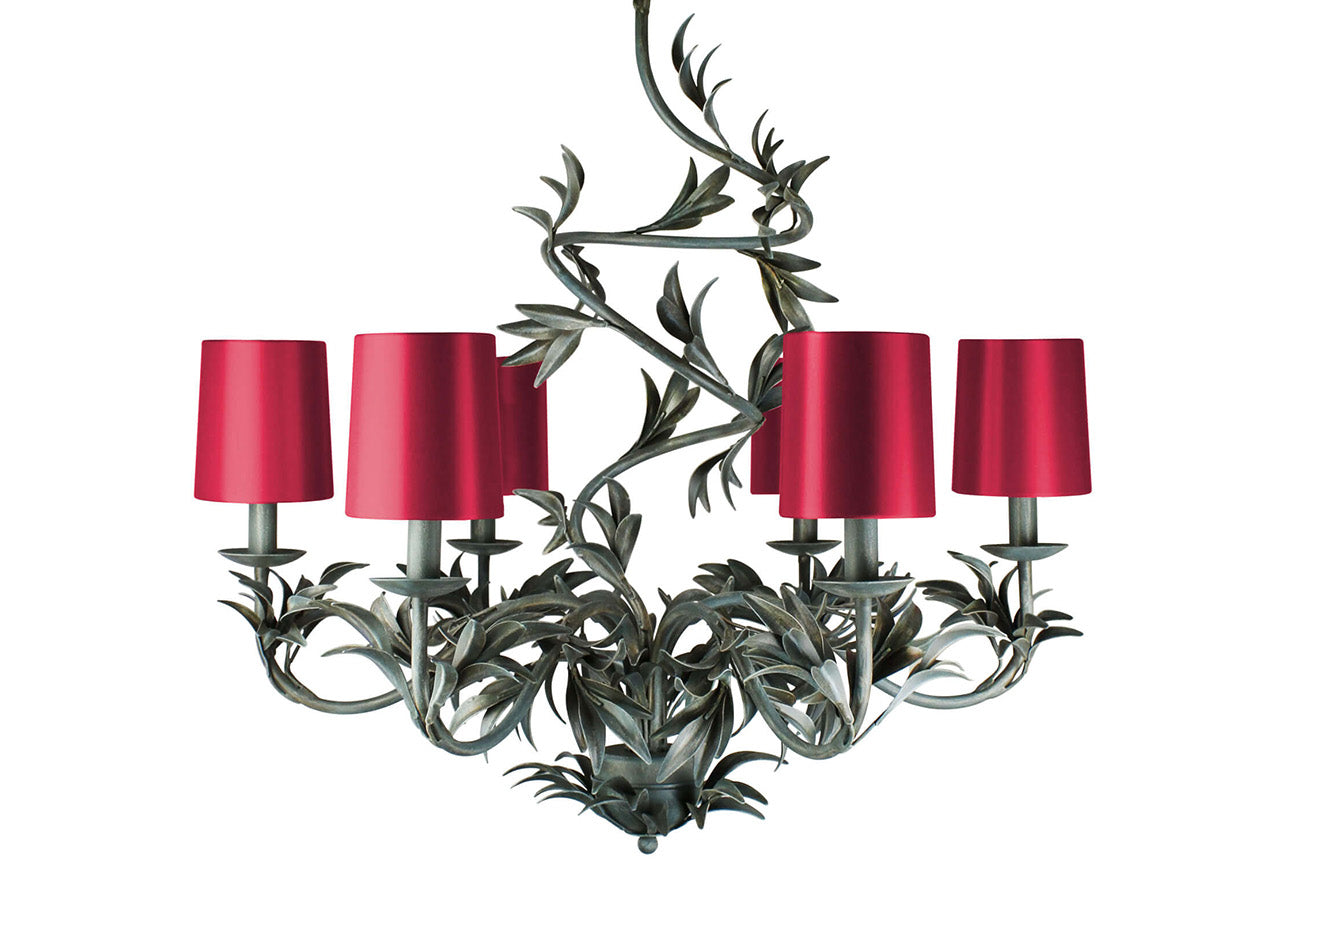 Villaverde luxury lighting designs metal decorative chandelier